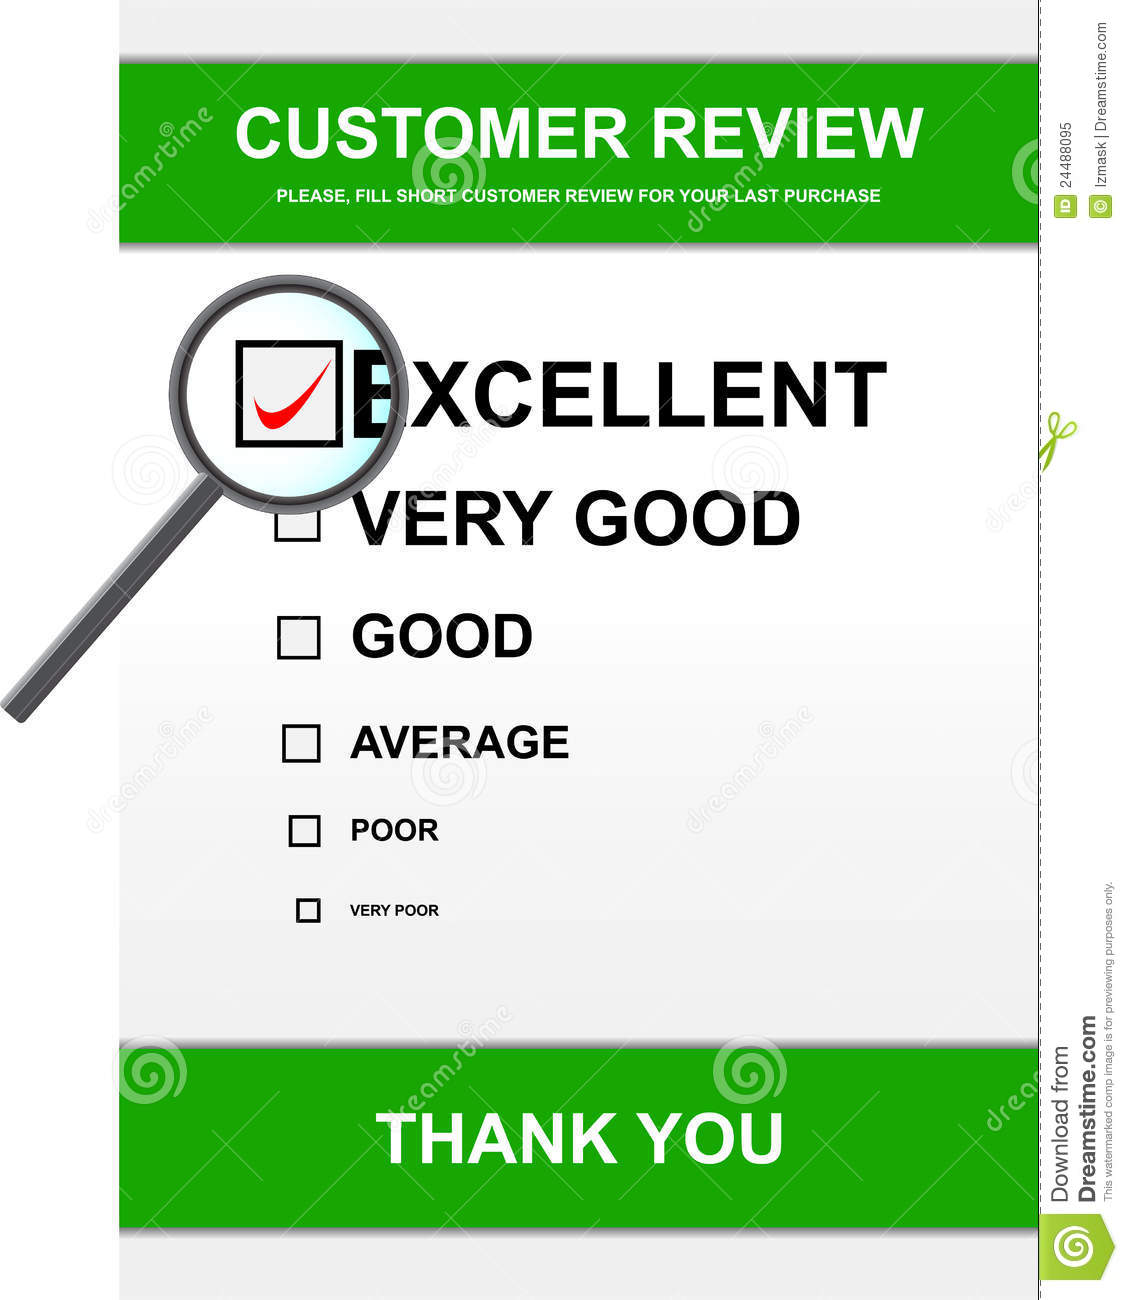 definition excellent customer service skills more information definition excellent customer service skills